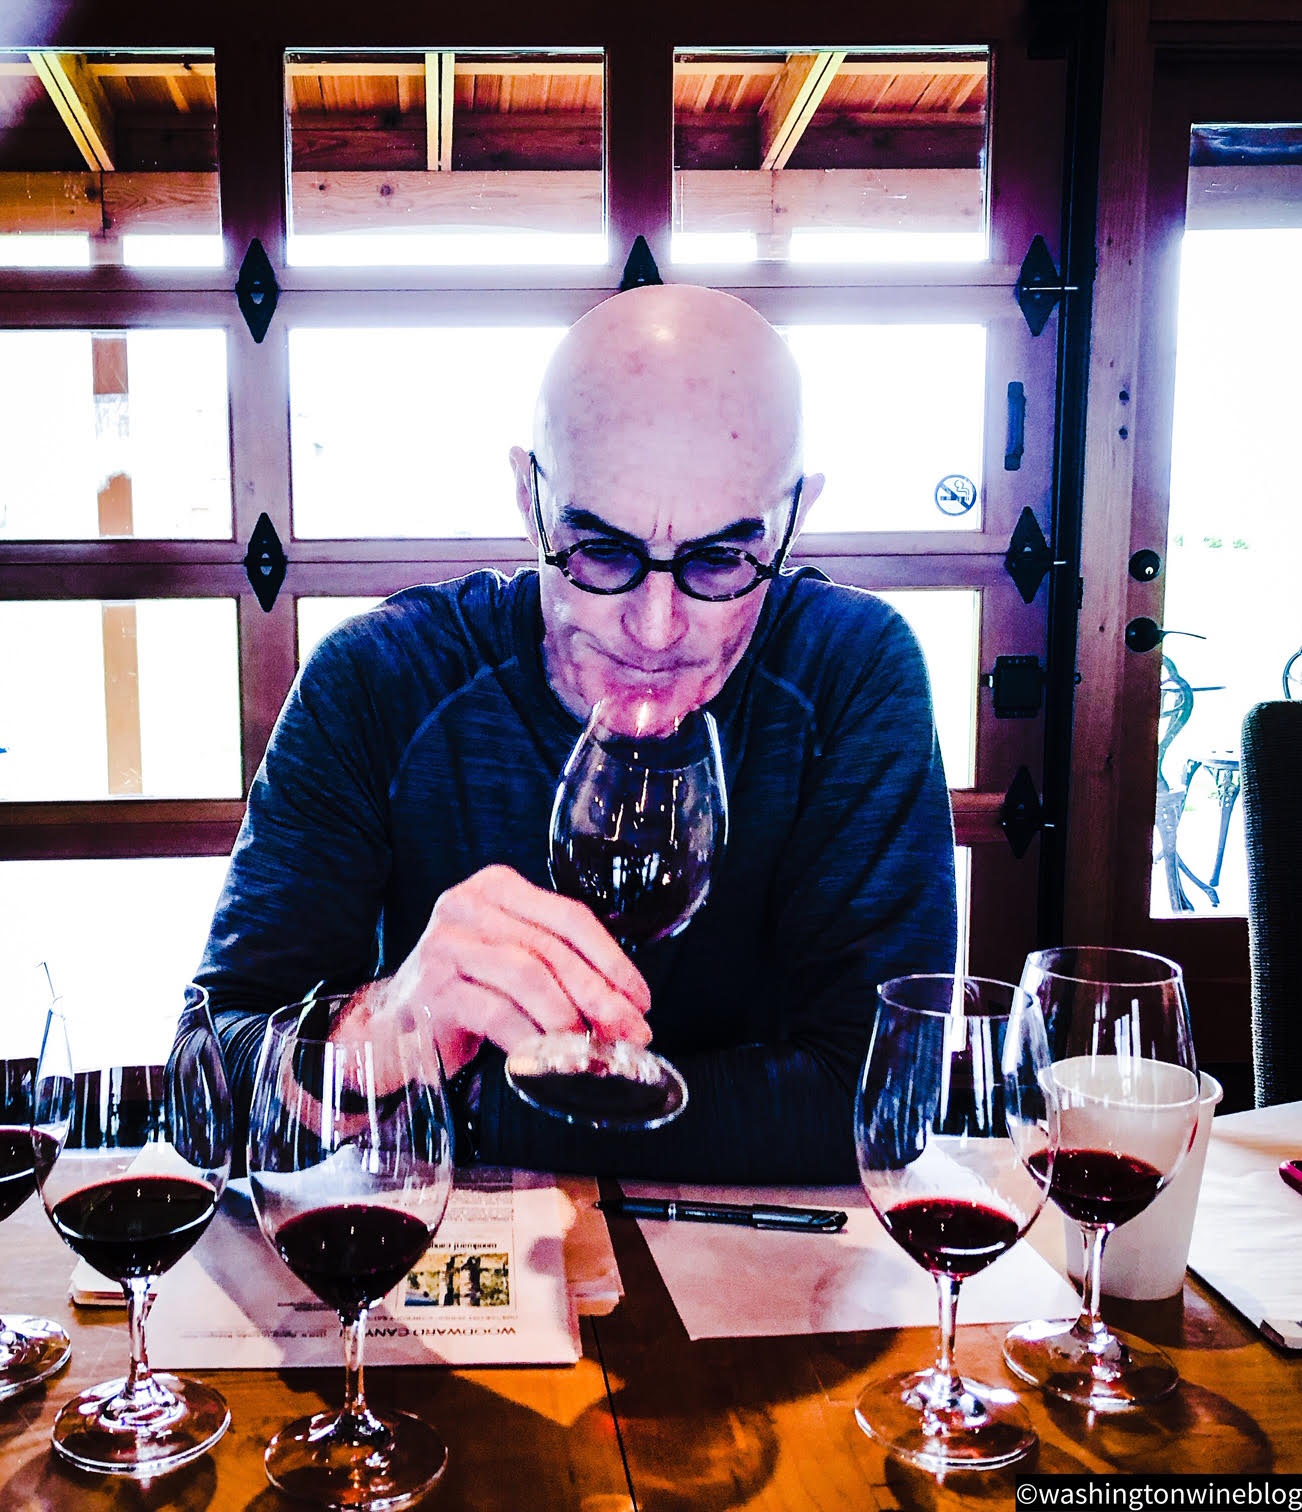 Washington wine pioneer, Rick Small, led us on a magical journey into his Woodward Canyon 'Artist Series' wines.